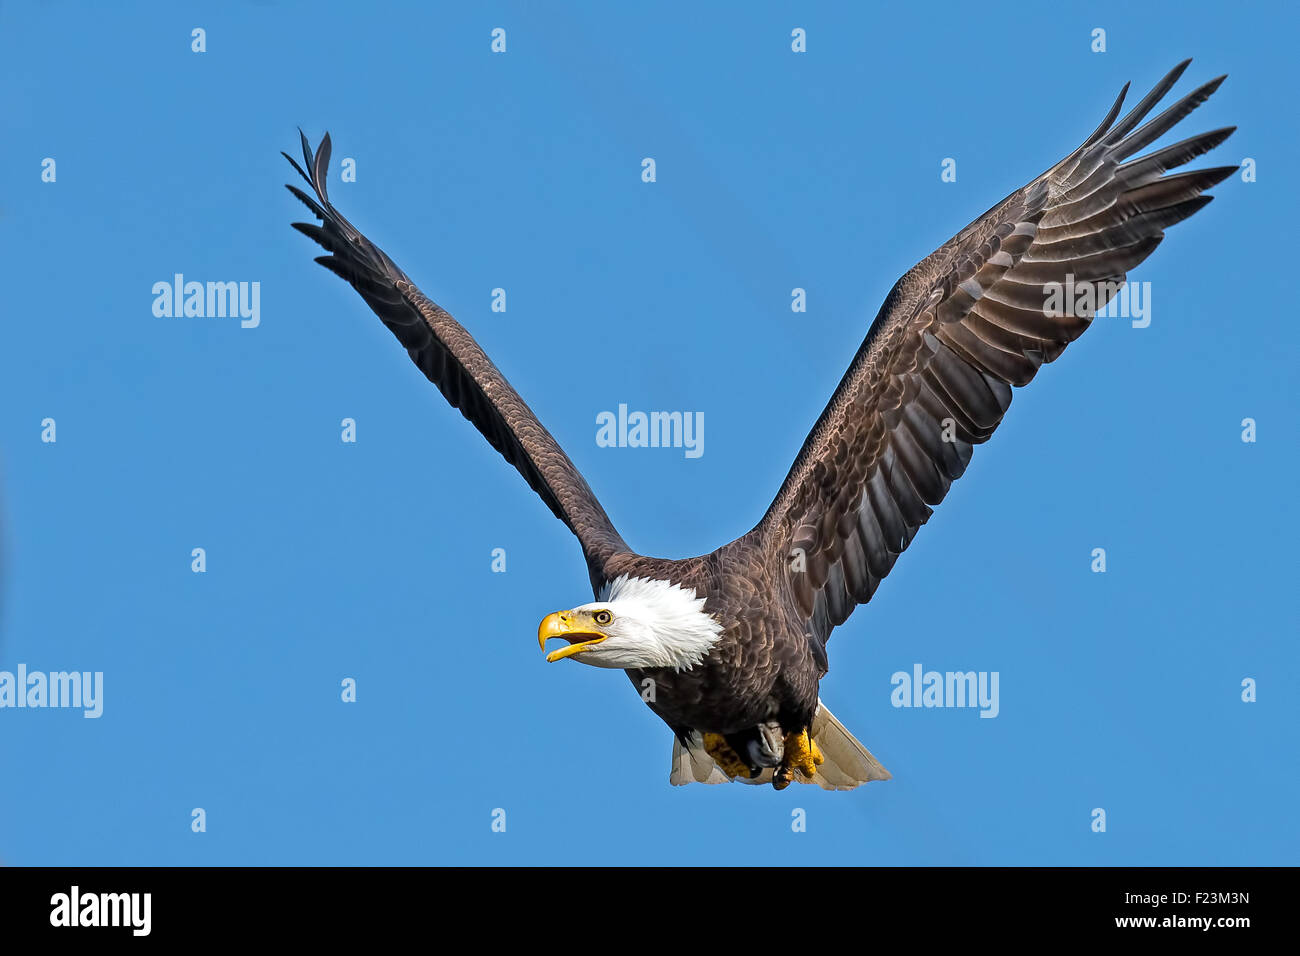 American Bald Eagle in flight - Stock Image